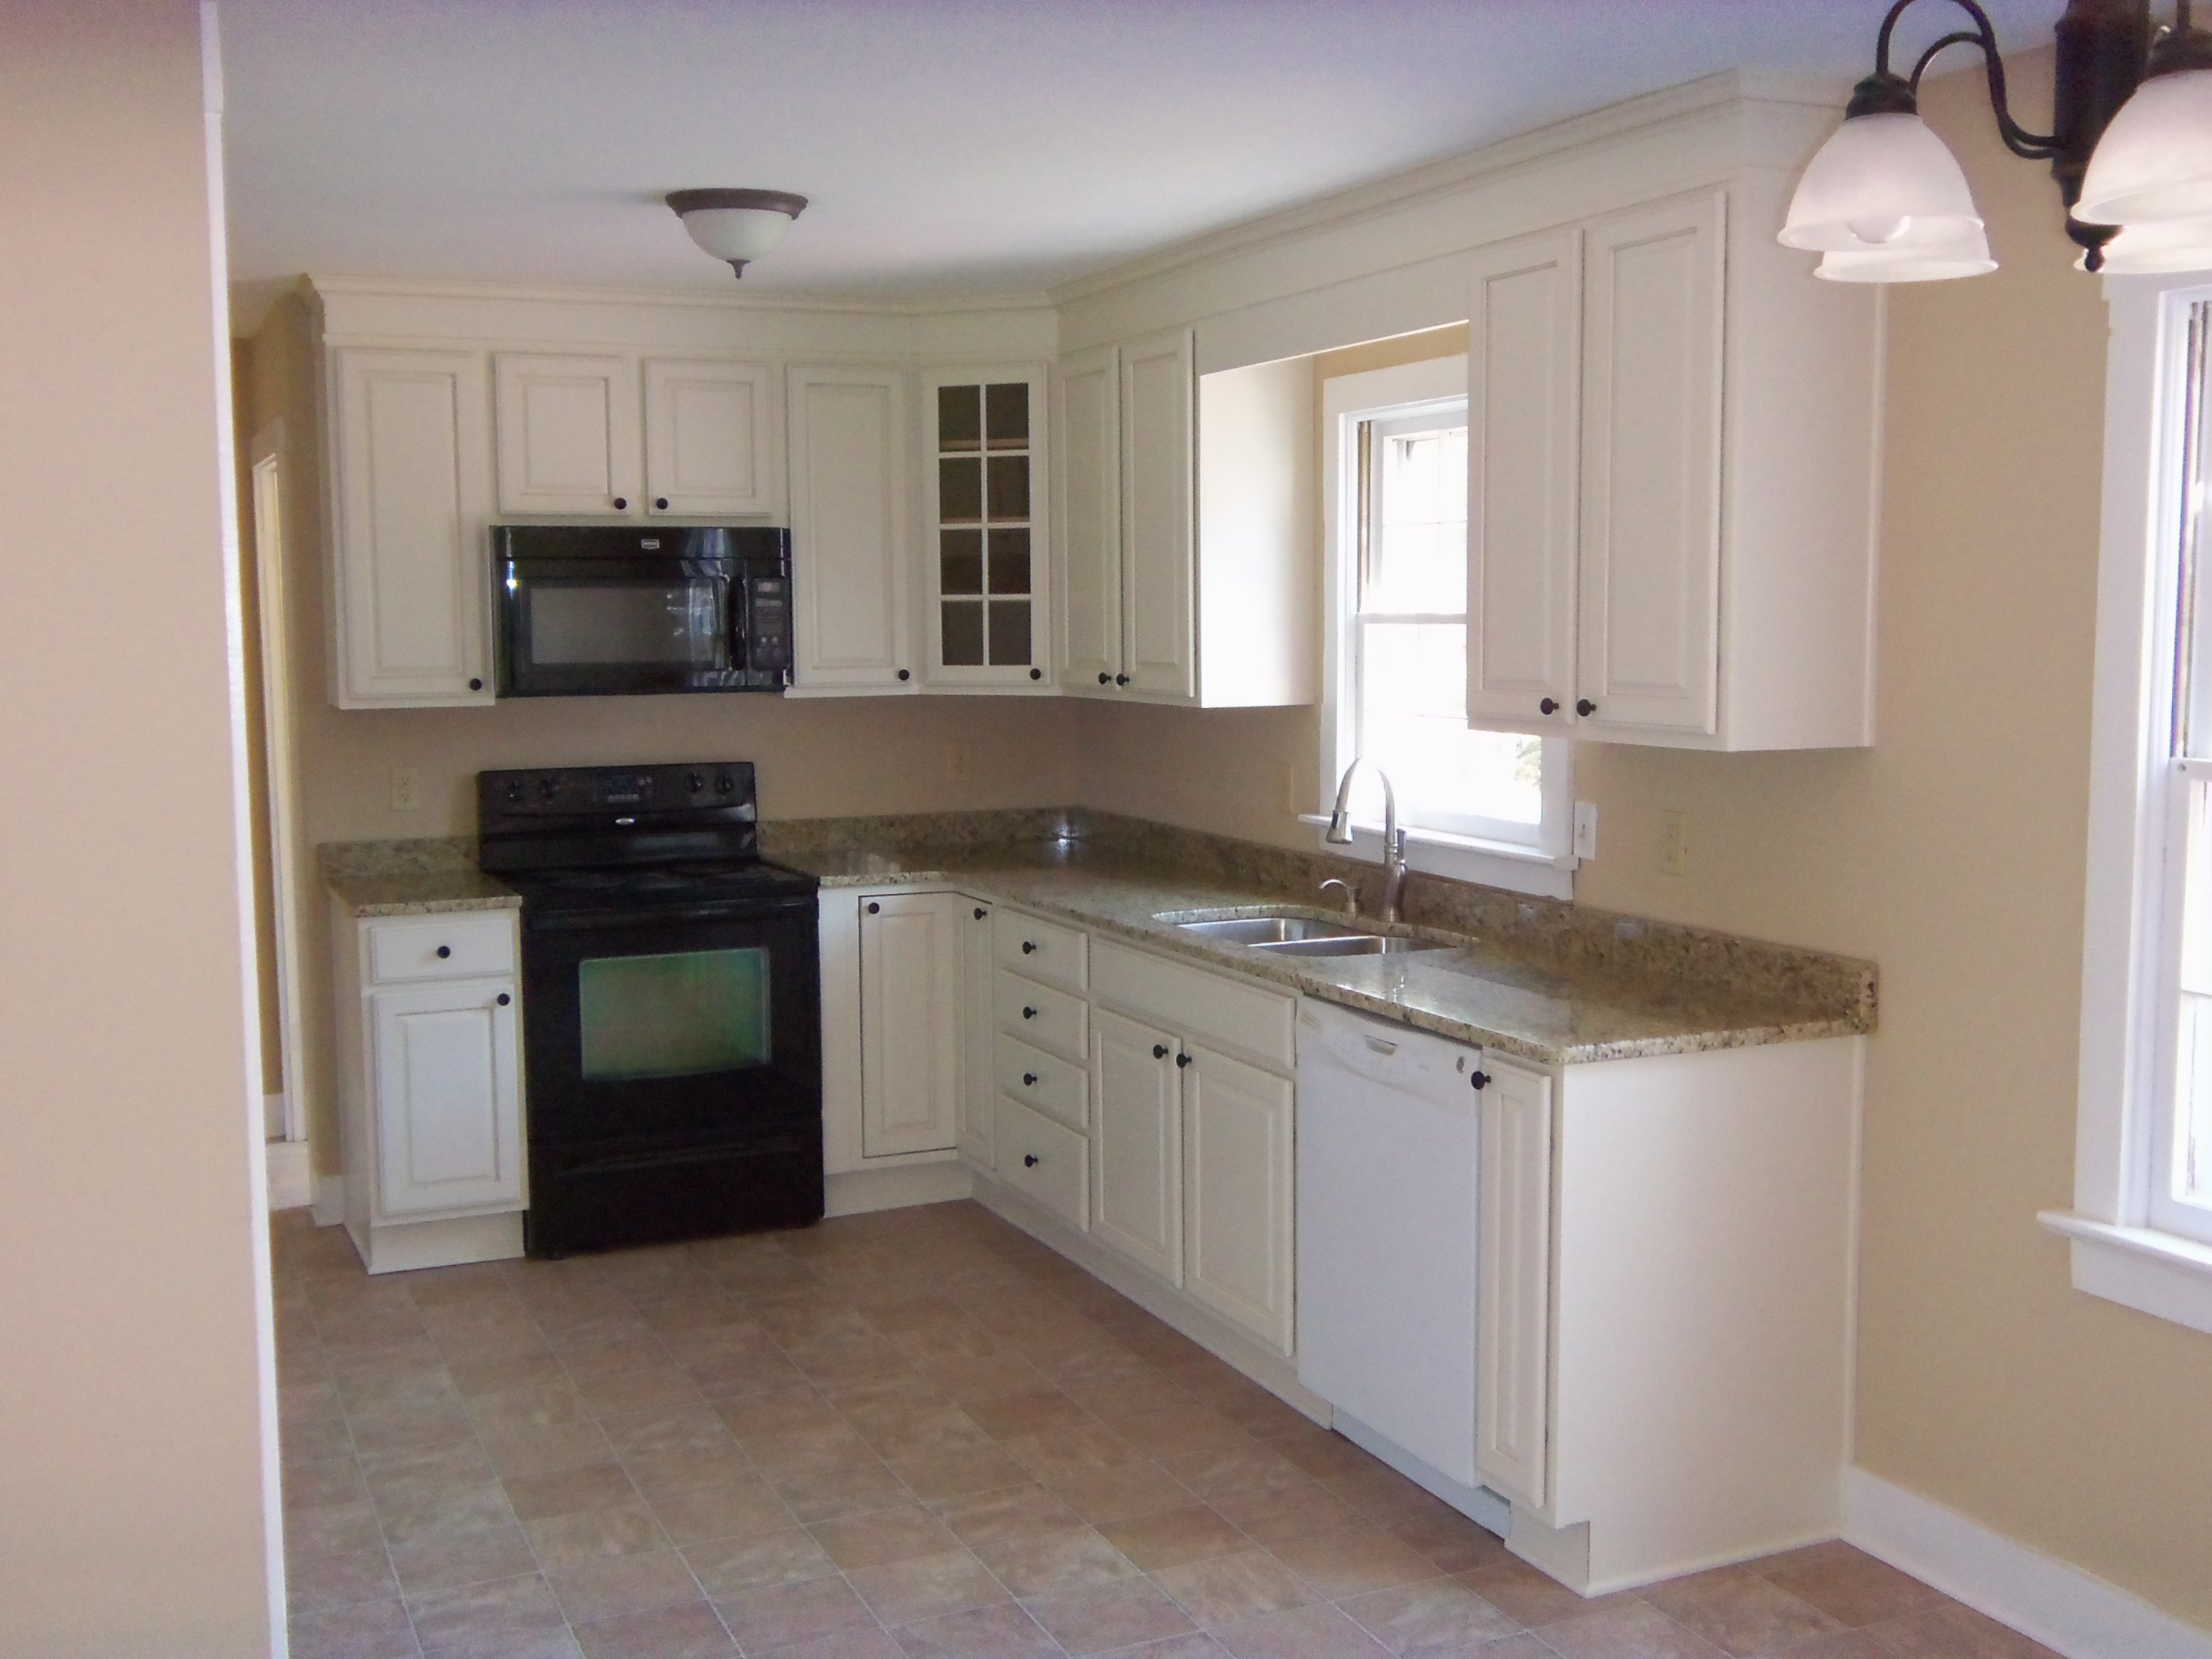 Cabinet Design For A Small L Shaped Kitchen